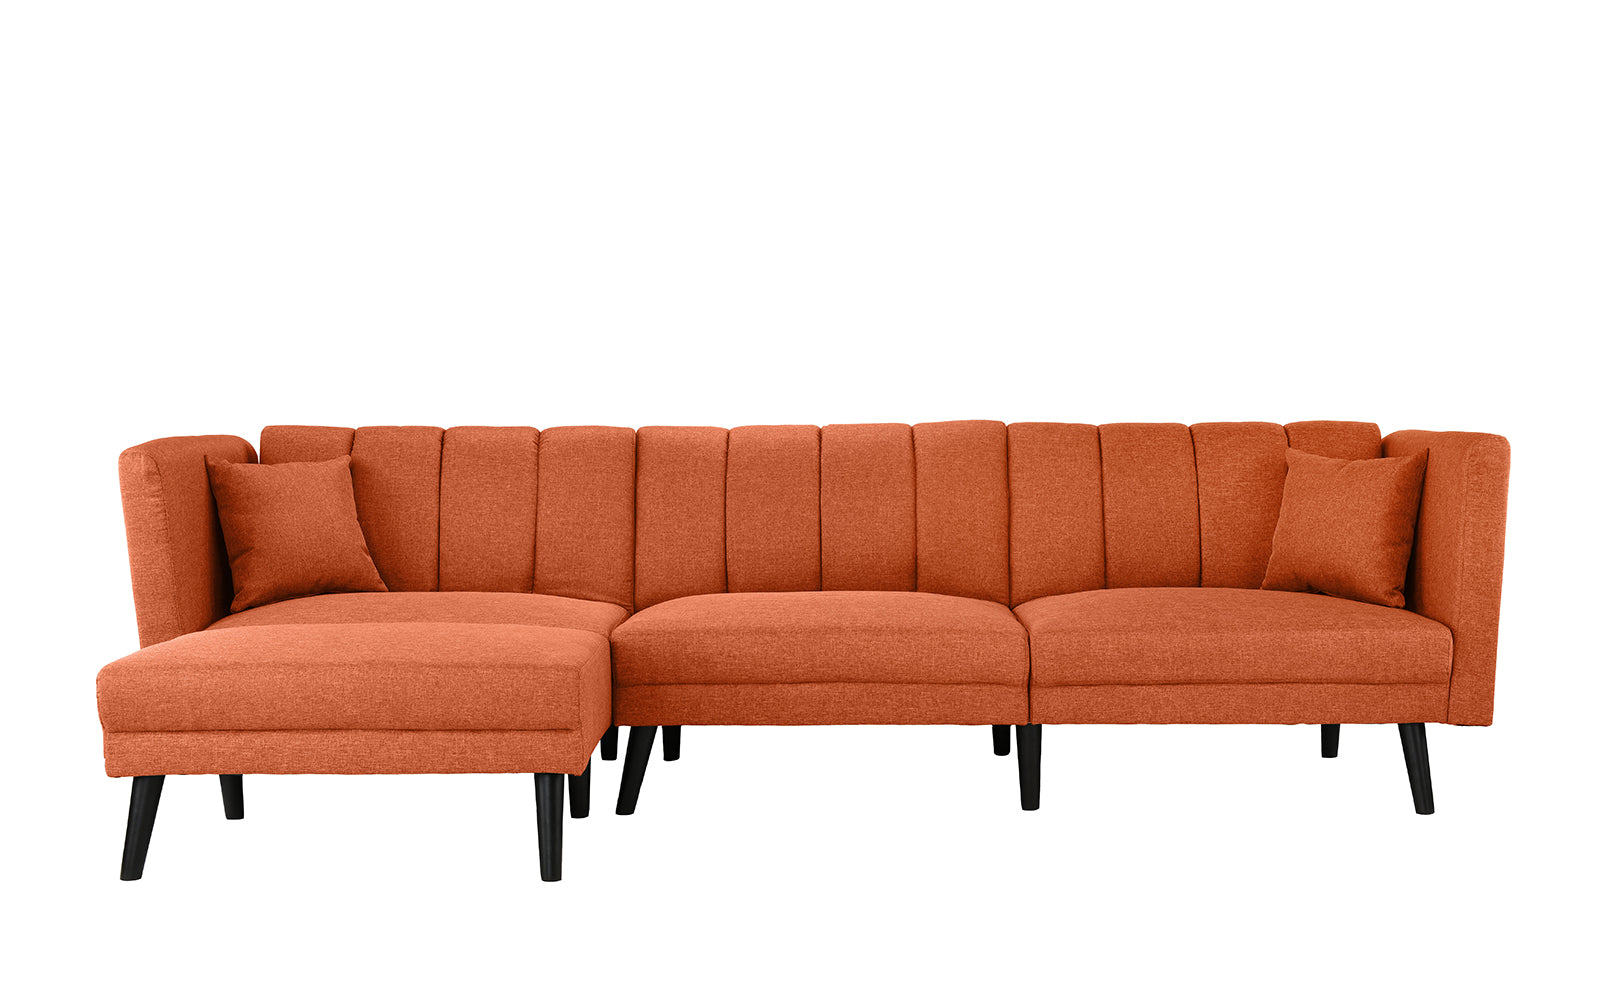 Zuri Mid Century Reclining Sleeper Sectional